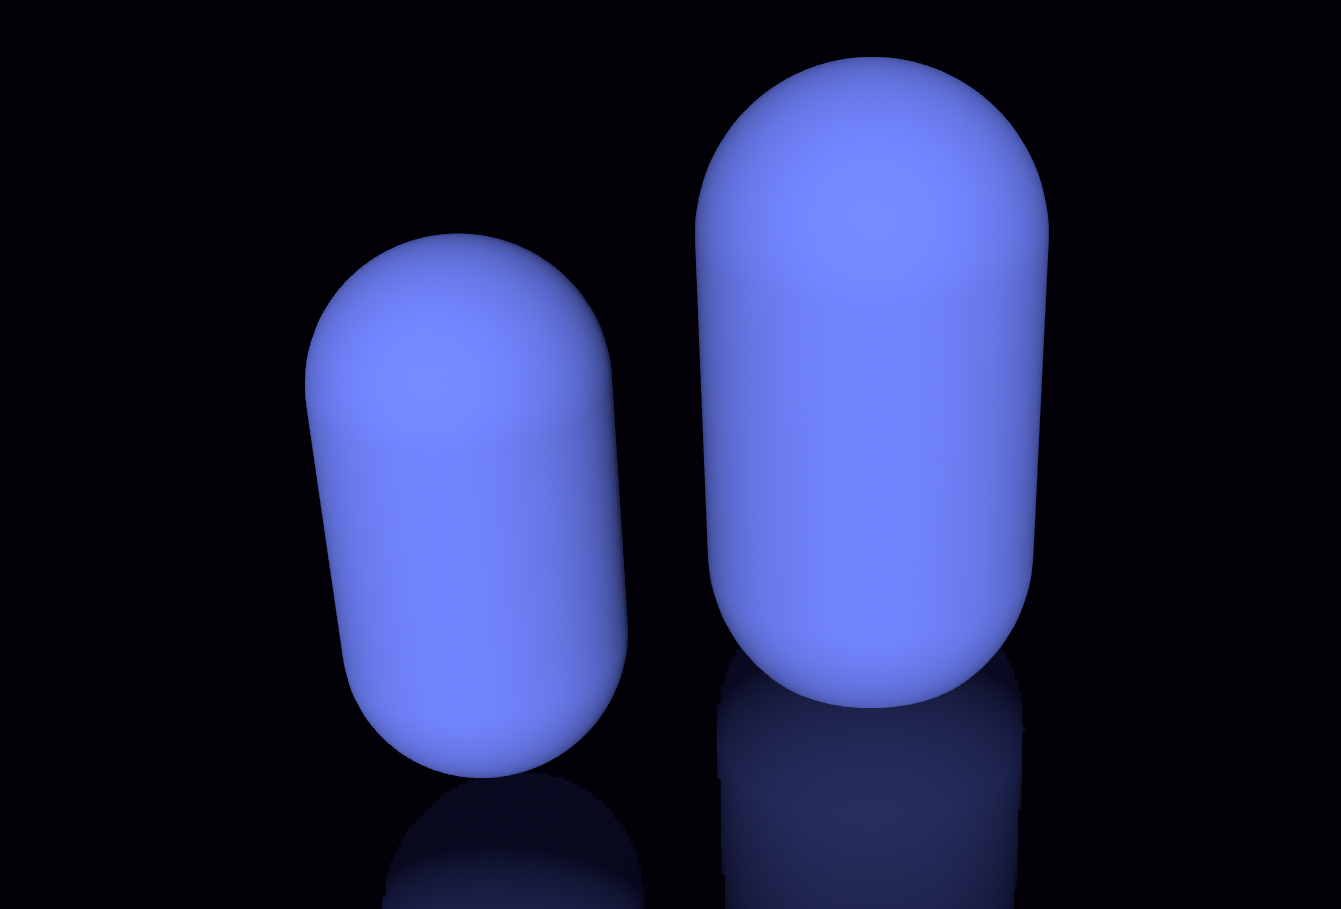 Figure 9. Two capsule with different height and radius.